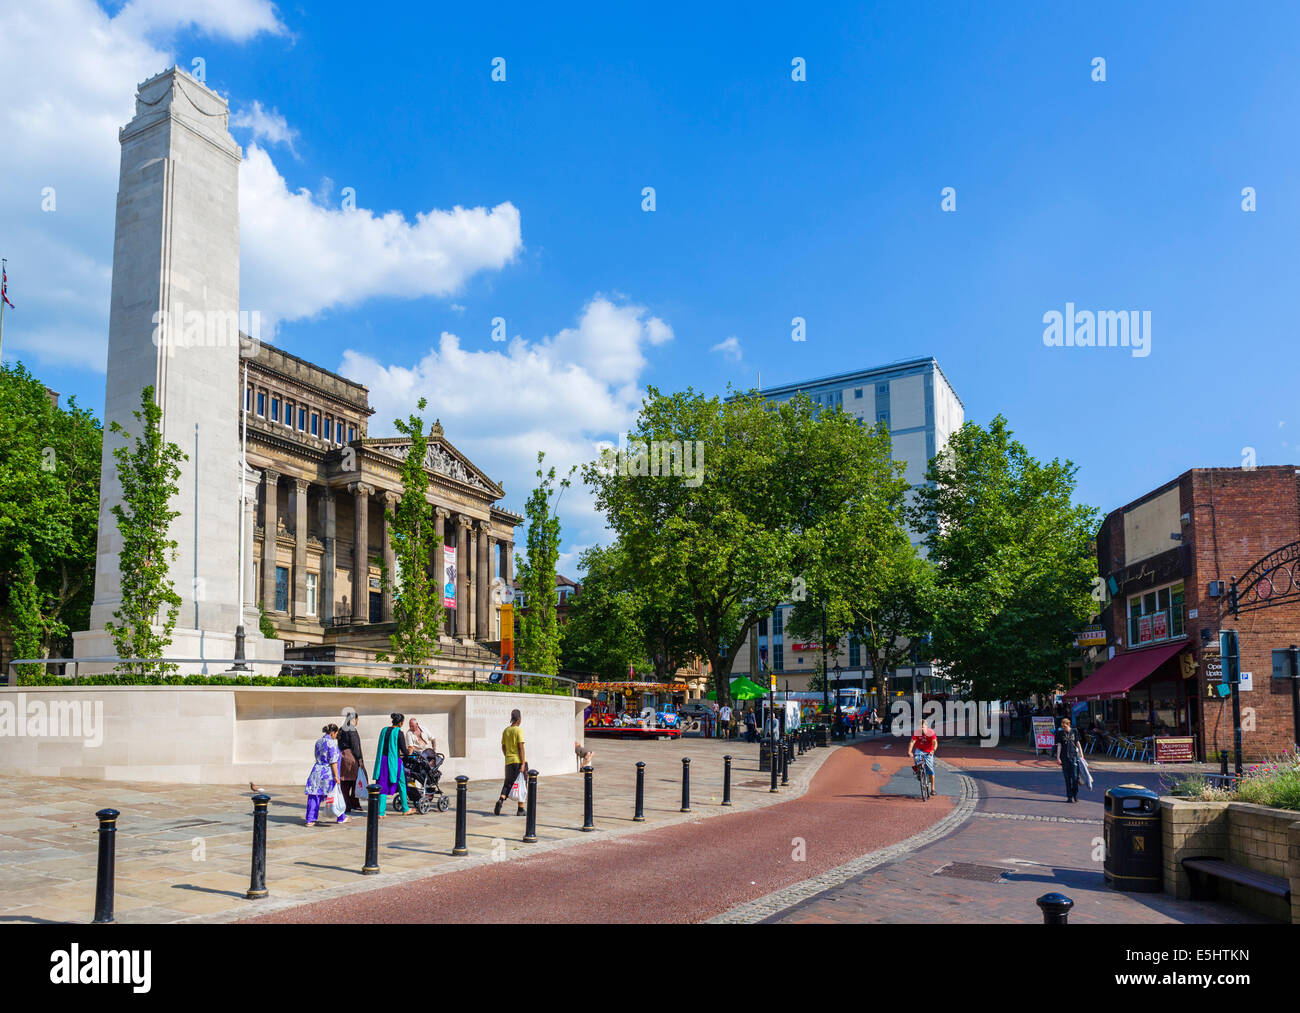 Preston Cenotaph and Harris Museum and Art Gallery, Market Square, Preston, Lancashire, UK - Stock Image